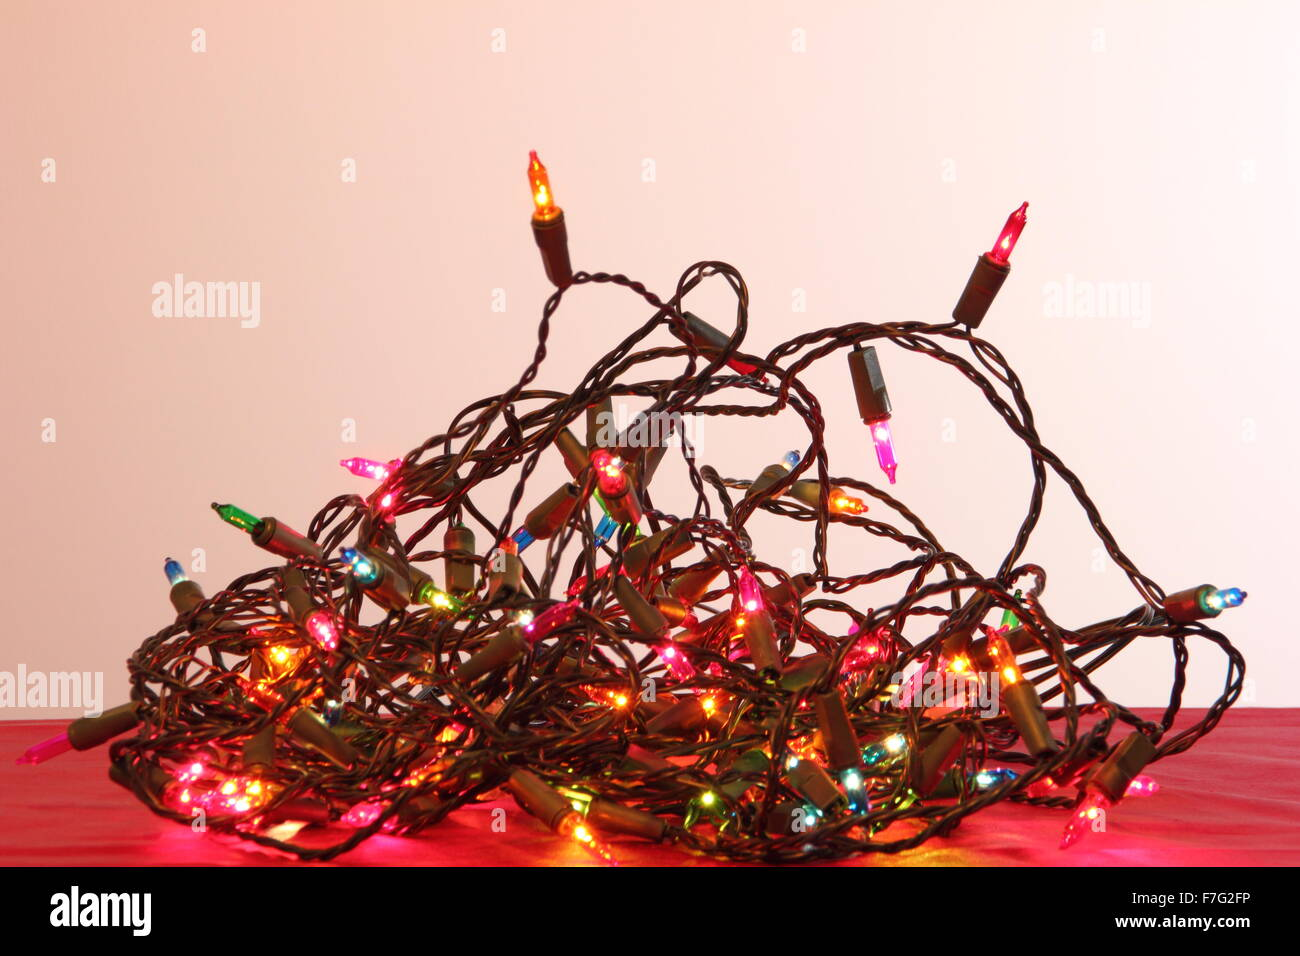 A tangle of indoor Christmas fairy lights in a domestic setting - England - Stock Image